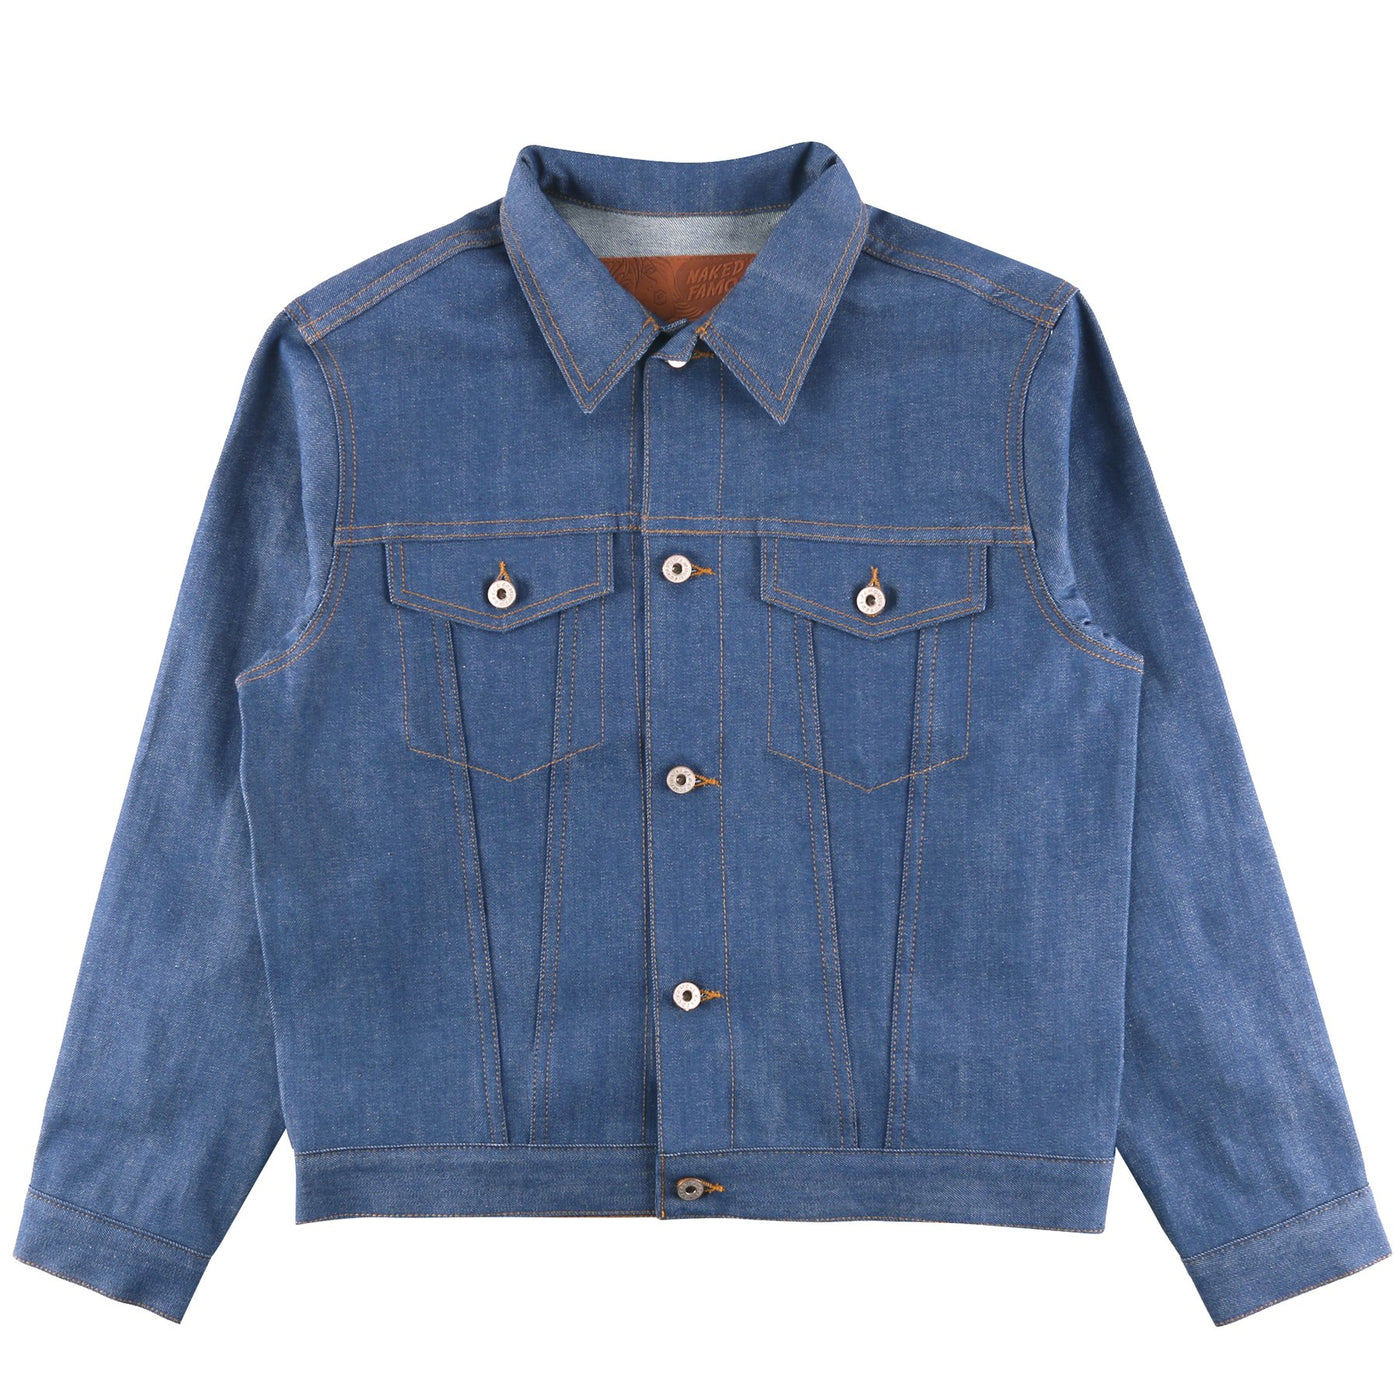 26d1532eb1dd Naked And Famous - Denim Jacket - Clear Blue Selvedge - Guys – O s ...